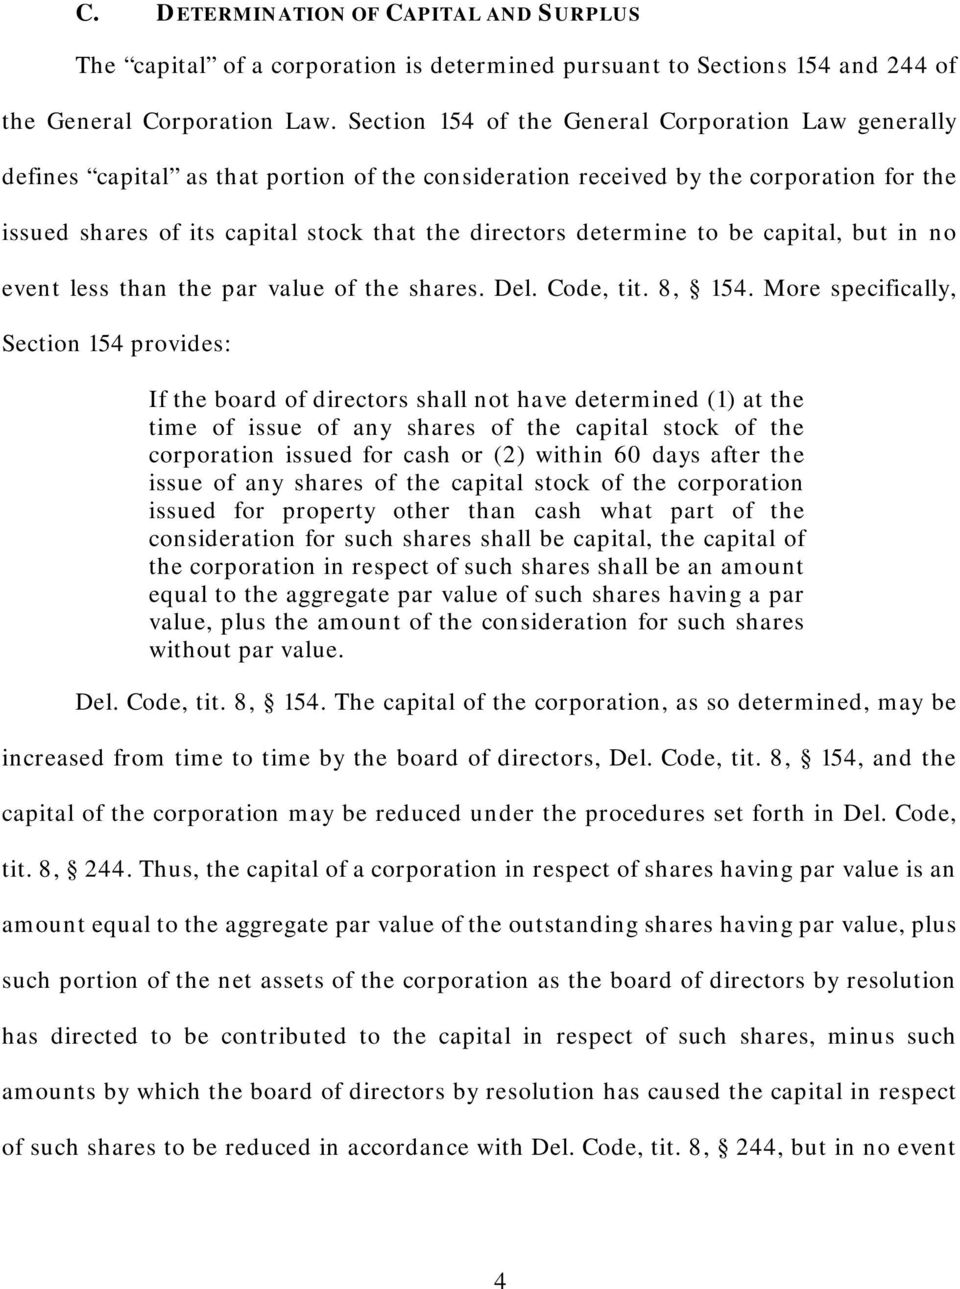 determine to be capital, but in no event less than the par value of the shares. Del. Code, tit. 8, 154.